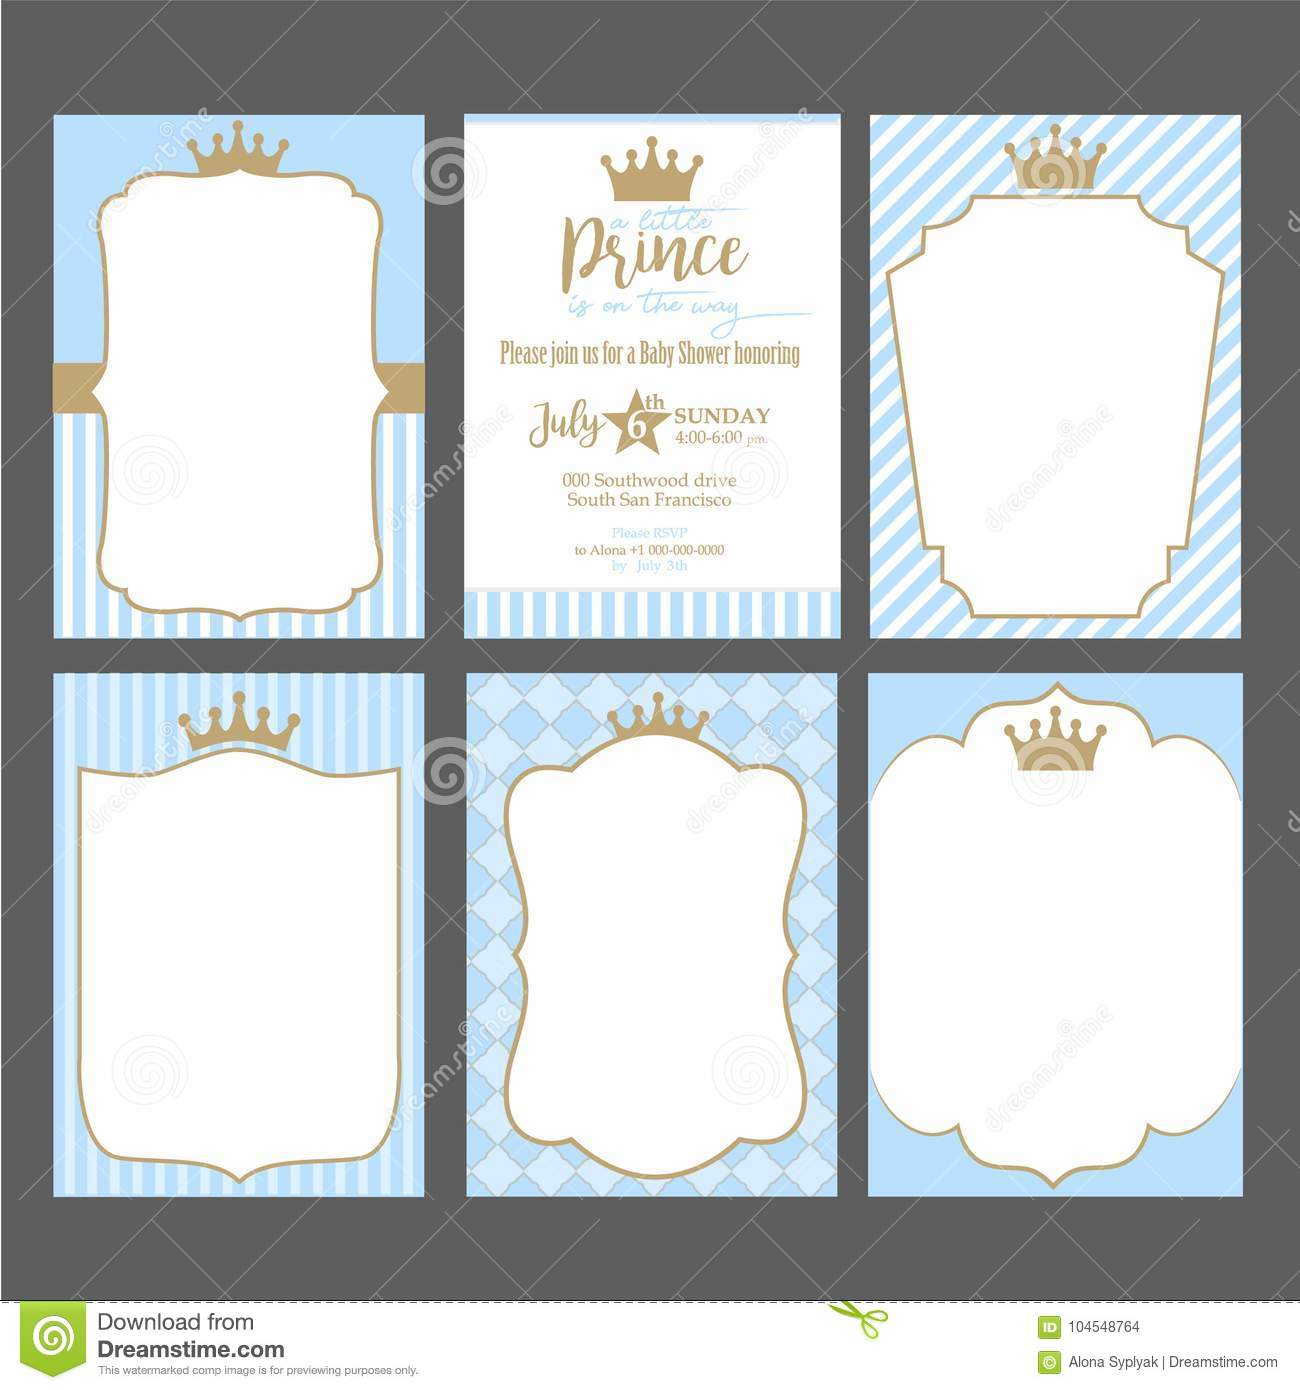 https www dreamstime com set cute blue templates invitations vintage gold frame crown little prince party baby shower wedding birthday invite image104548764